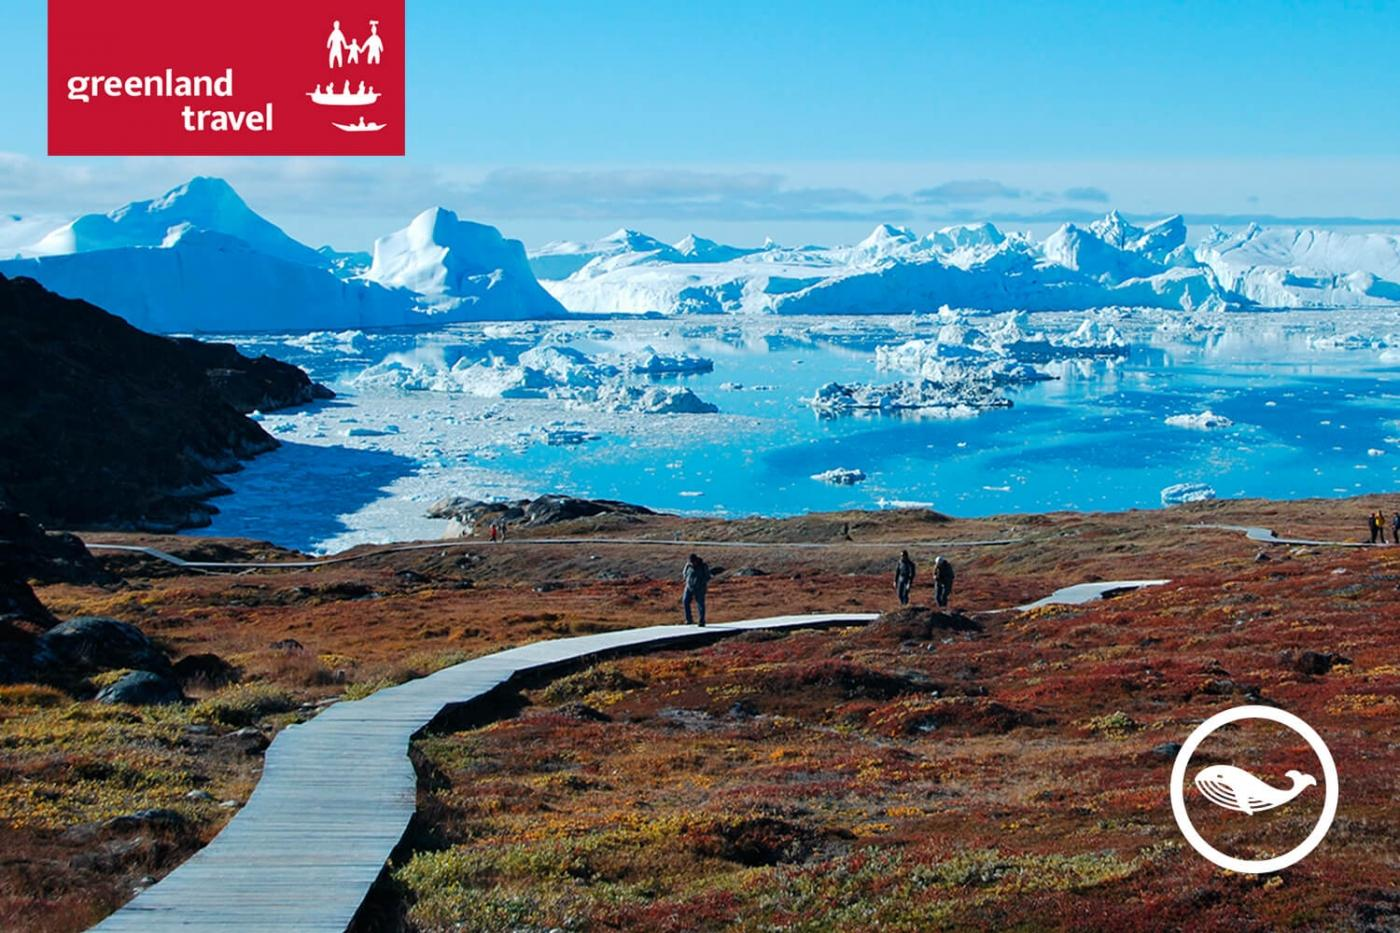 Greenland Travel: QUICK GETAWAY! 4 days in arctic paradise